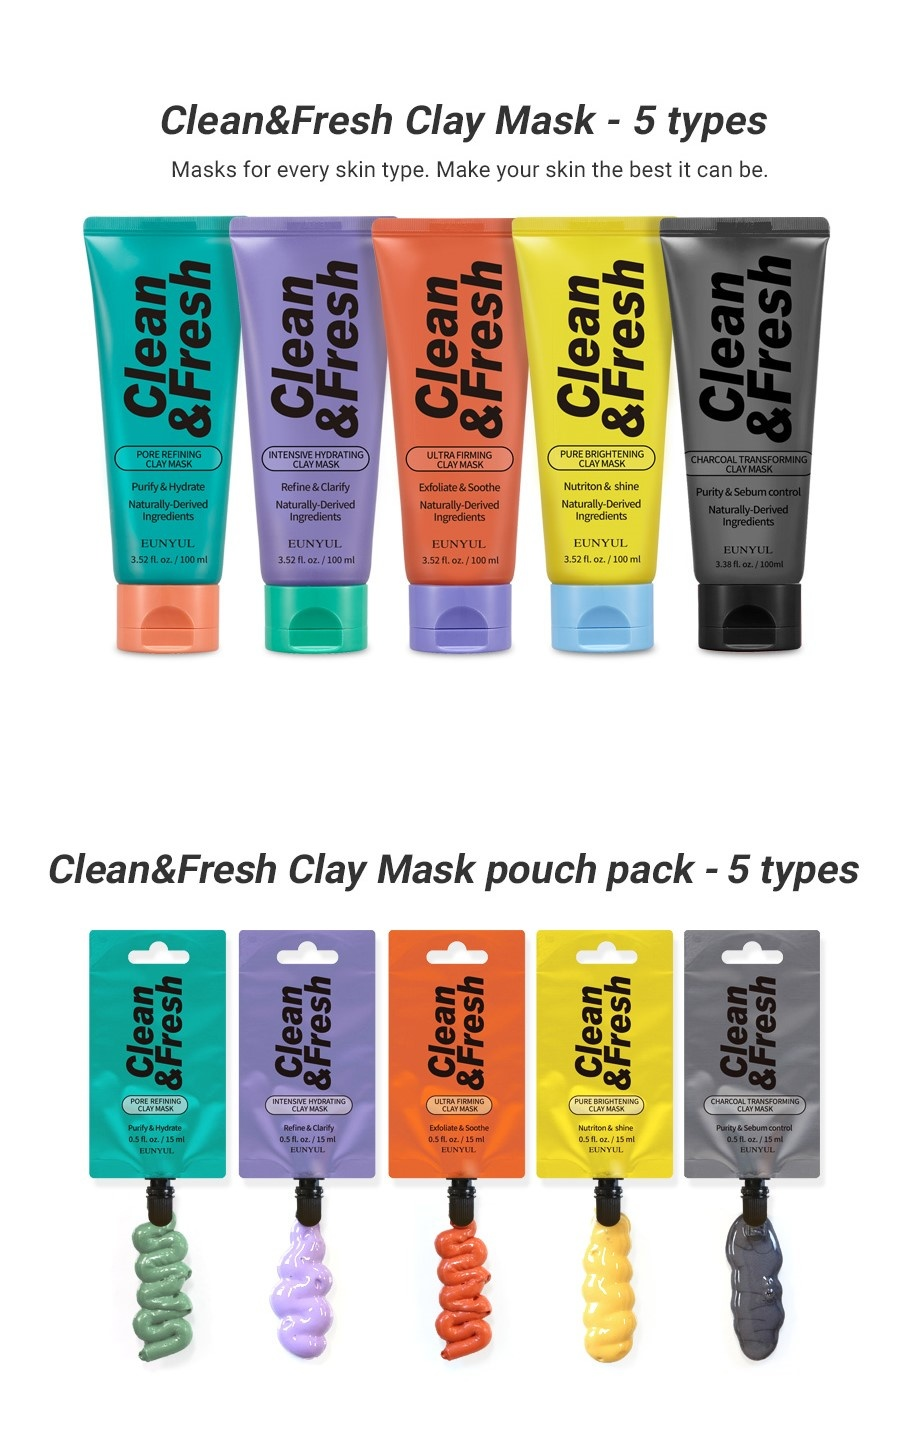 Clean & Fresh Clay Mask Pouch Pack - Pure Brightening-5